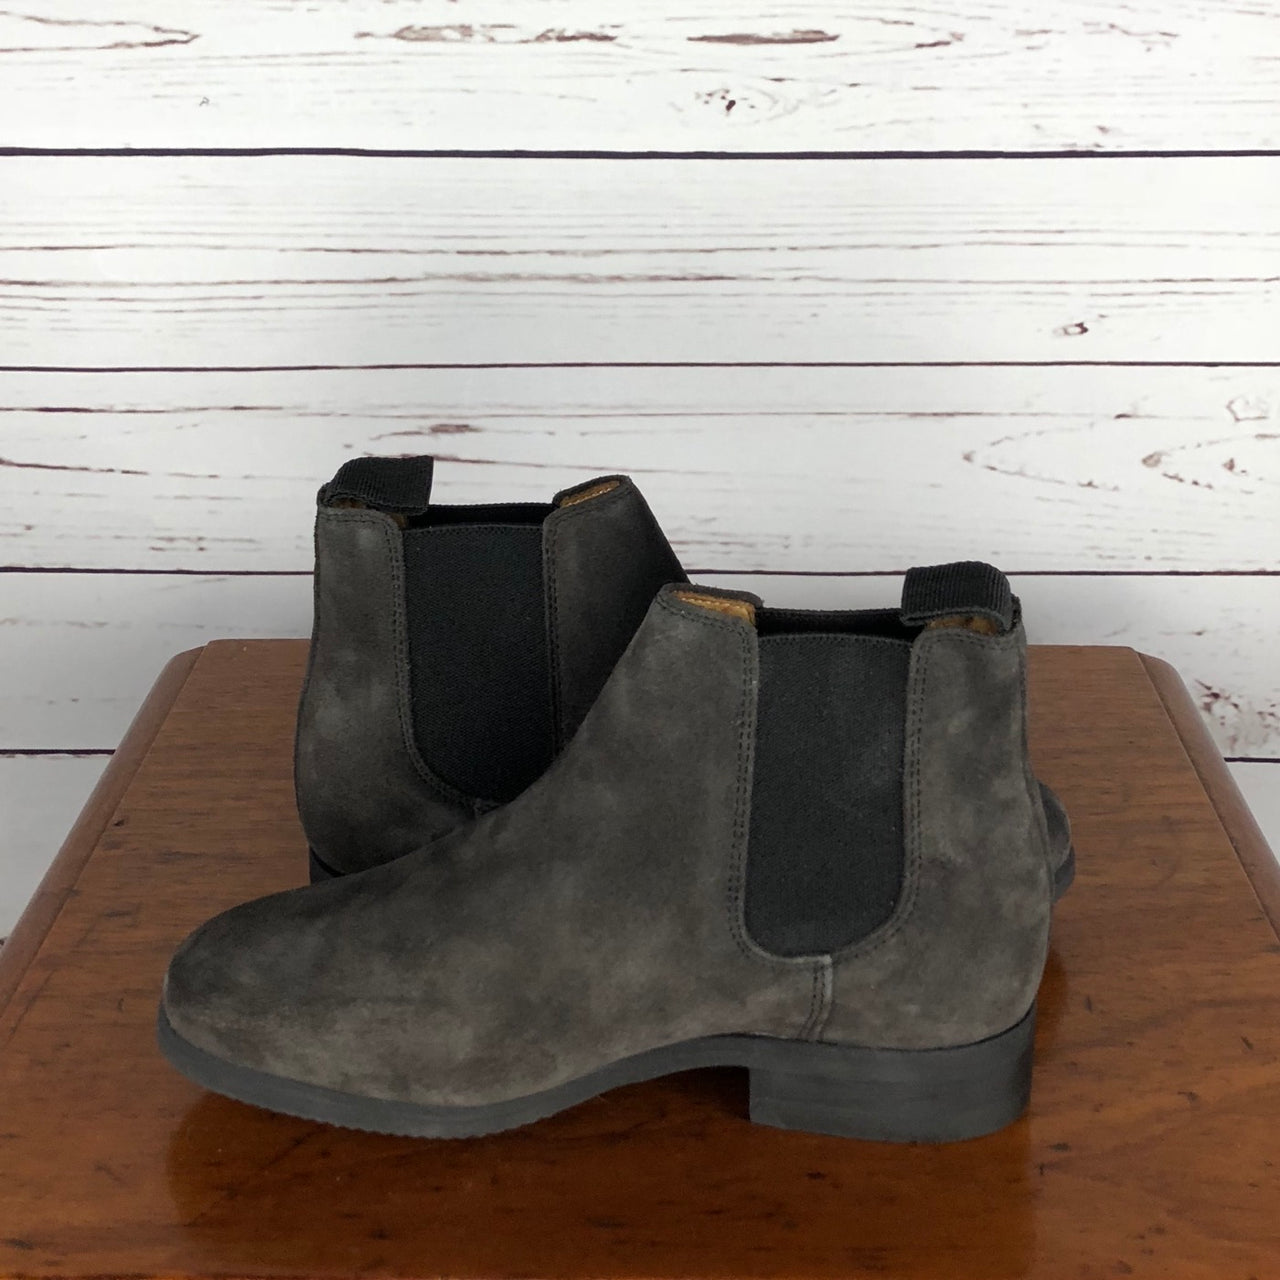 Celeris Letizia Chelsea Boot in Grey Suede - EU 33 (Children's US 1.5-2)